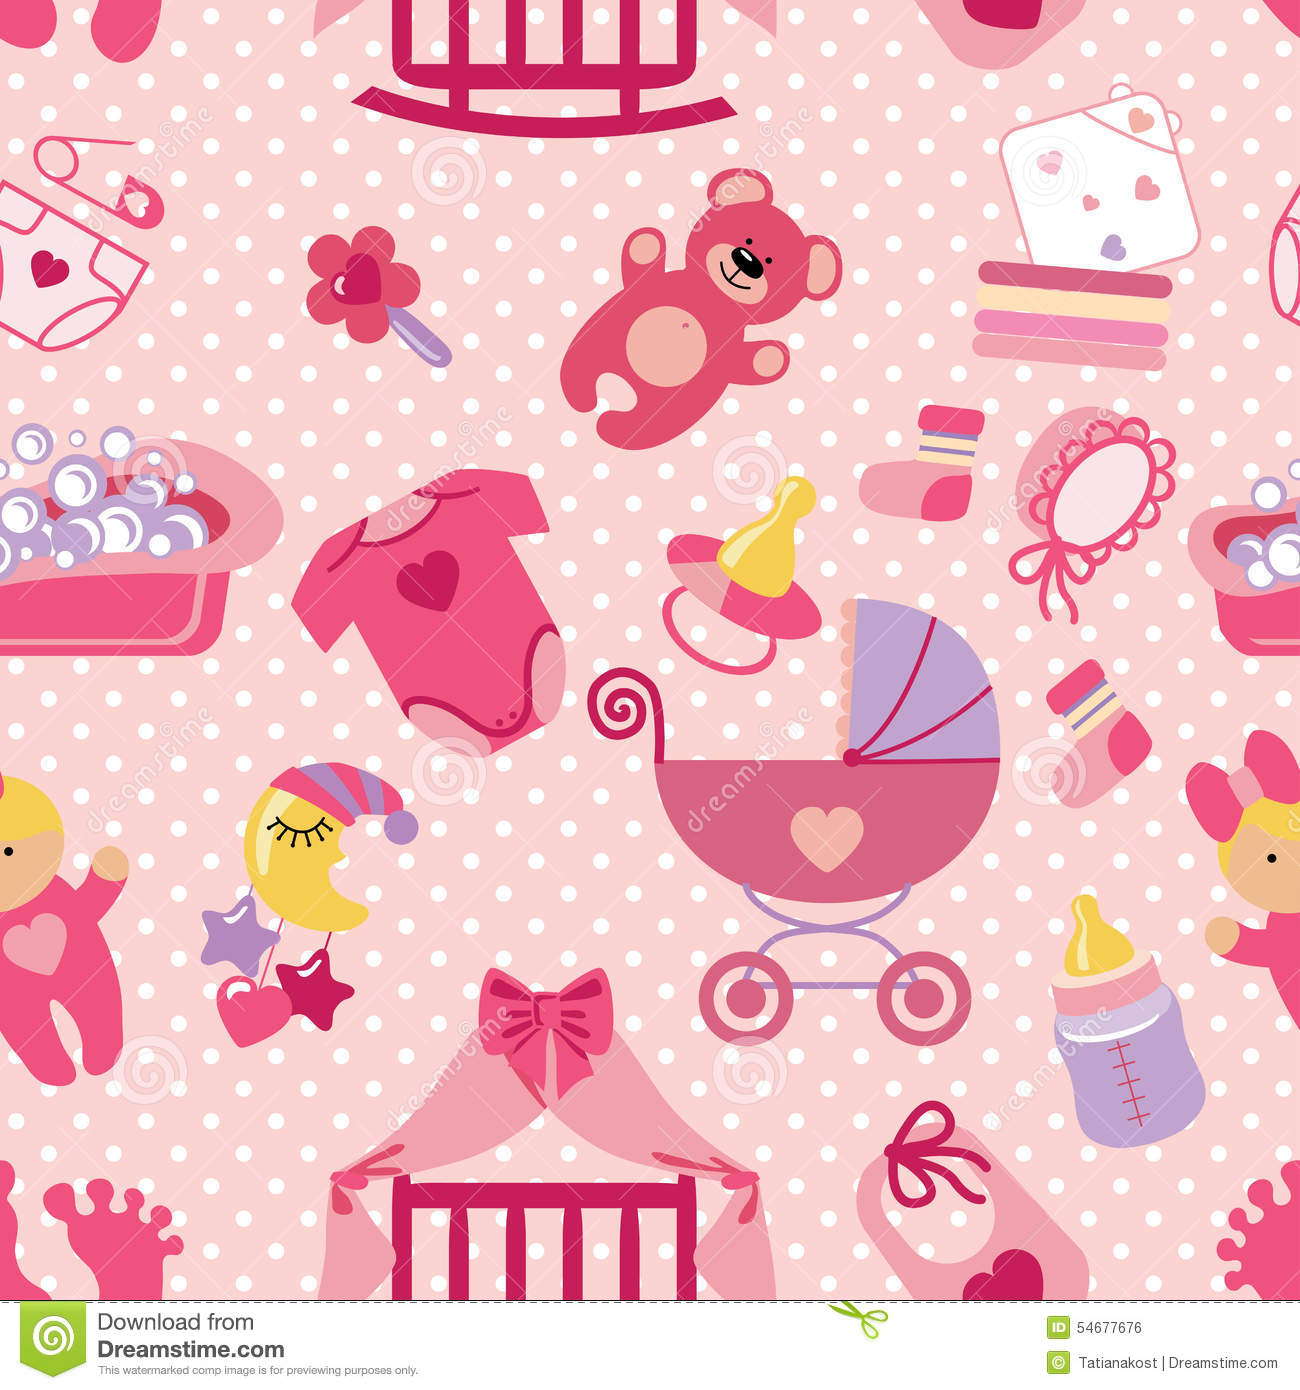 Paw Background Cute Patterns page 11 - Patterns Kid